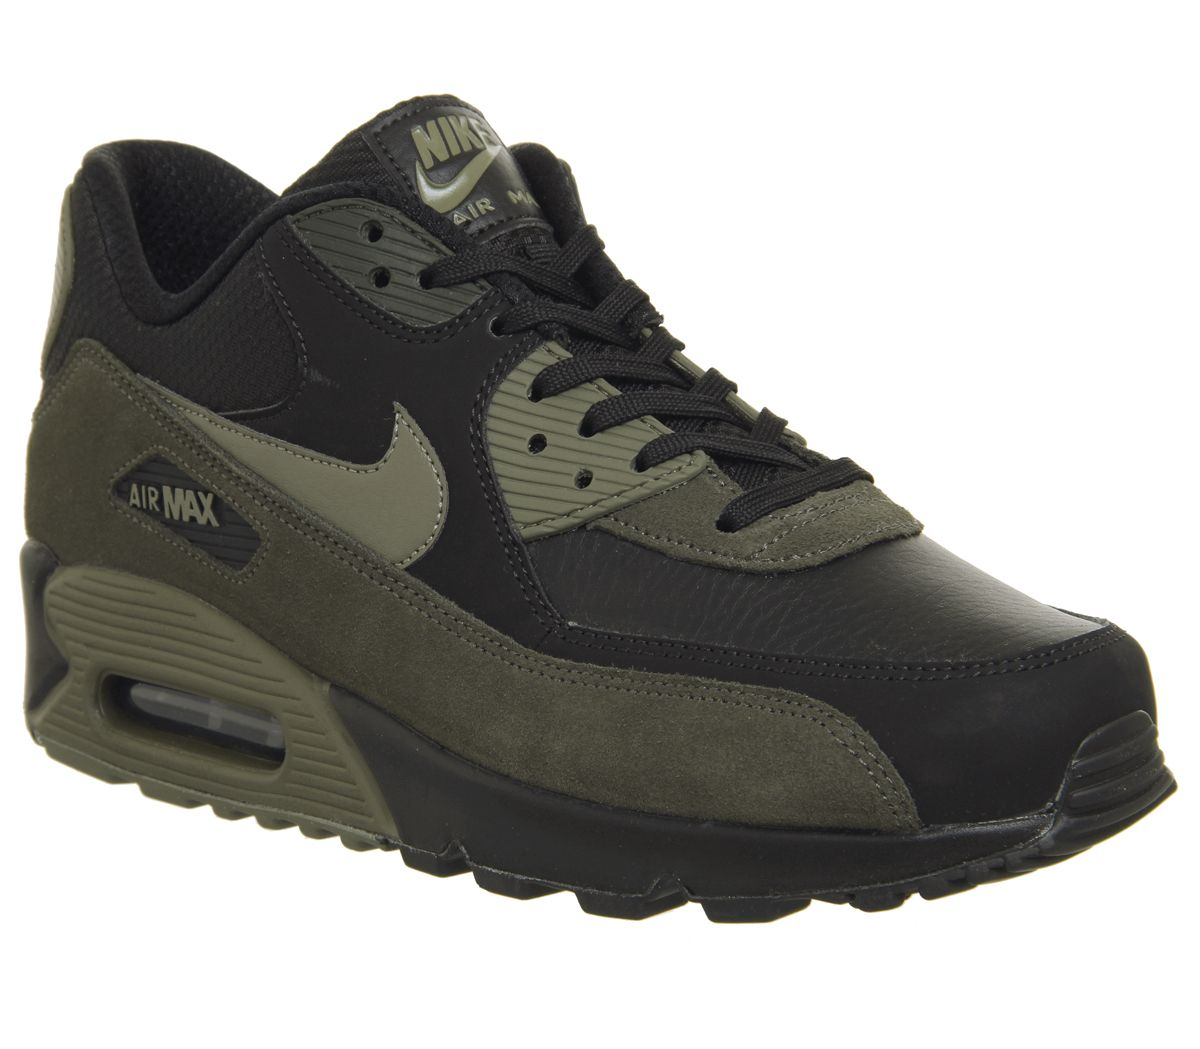 detailed look 423cb aea2f Nike Air Max 90 Trainers Black Medium Olive Sequoia - His trainers